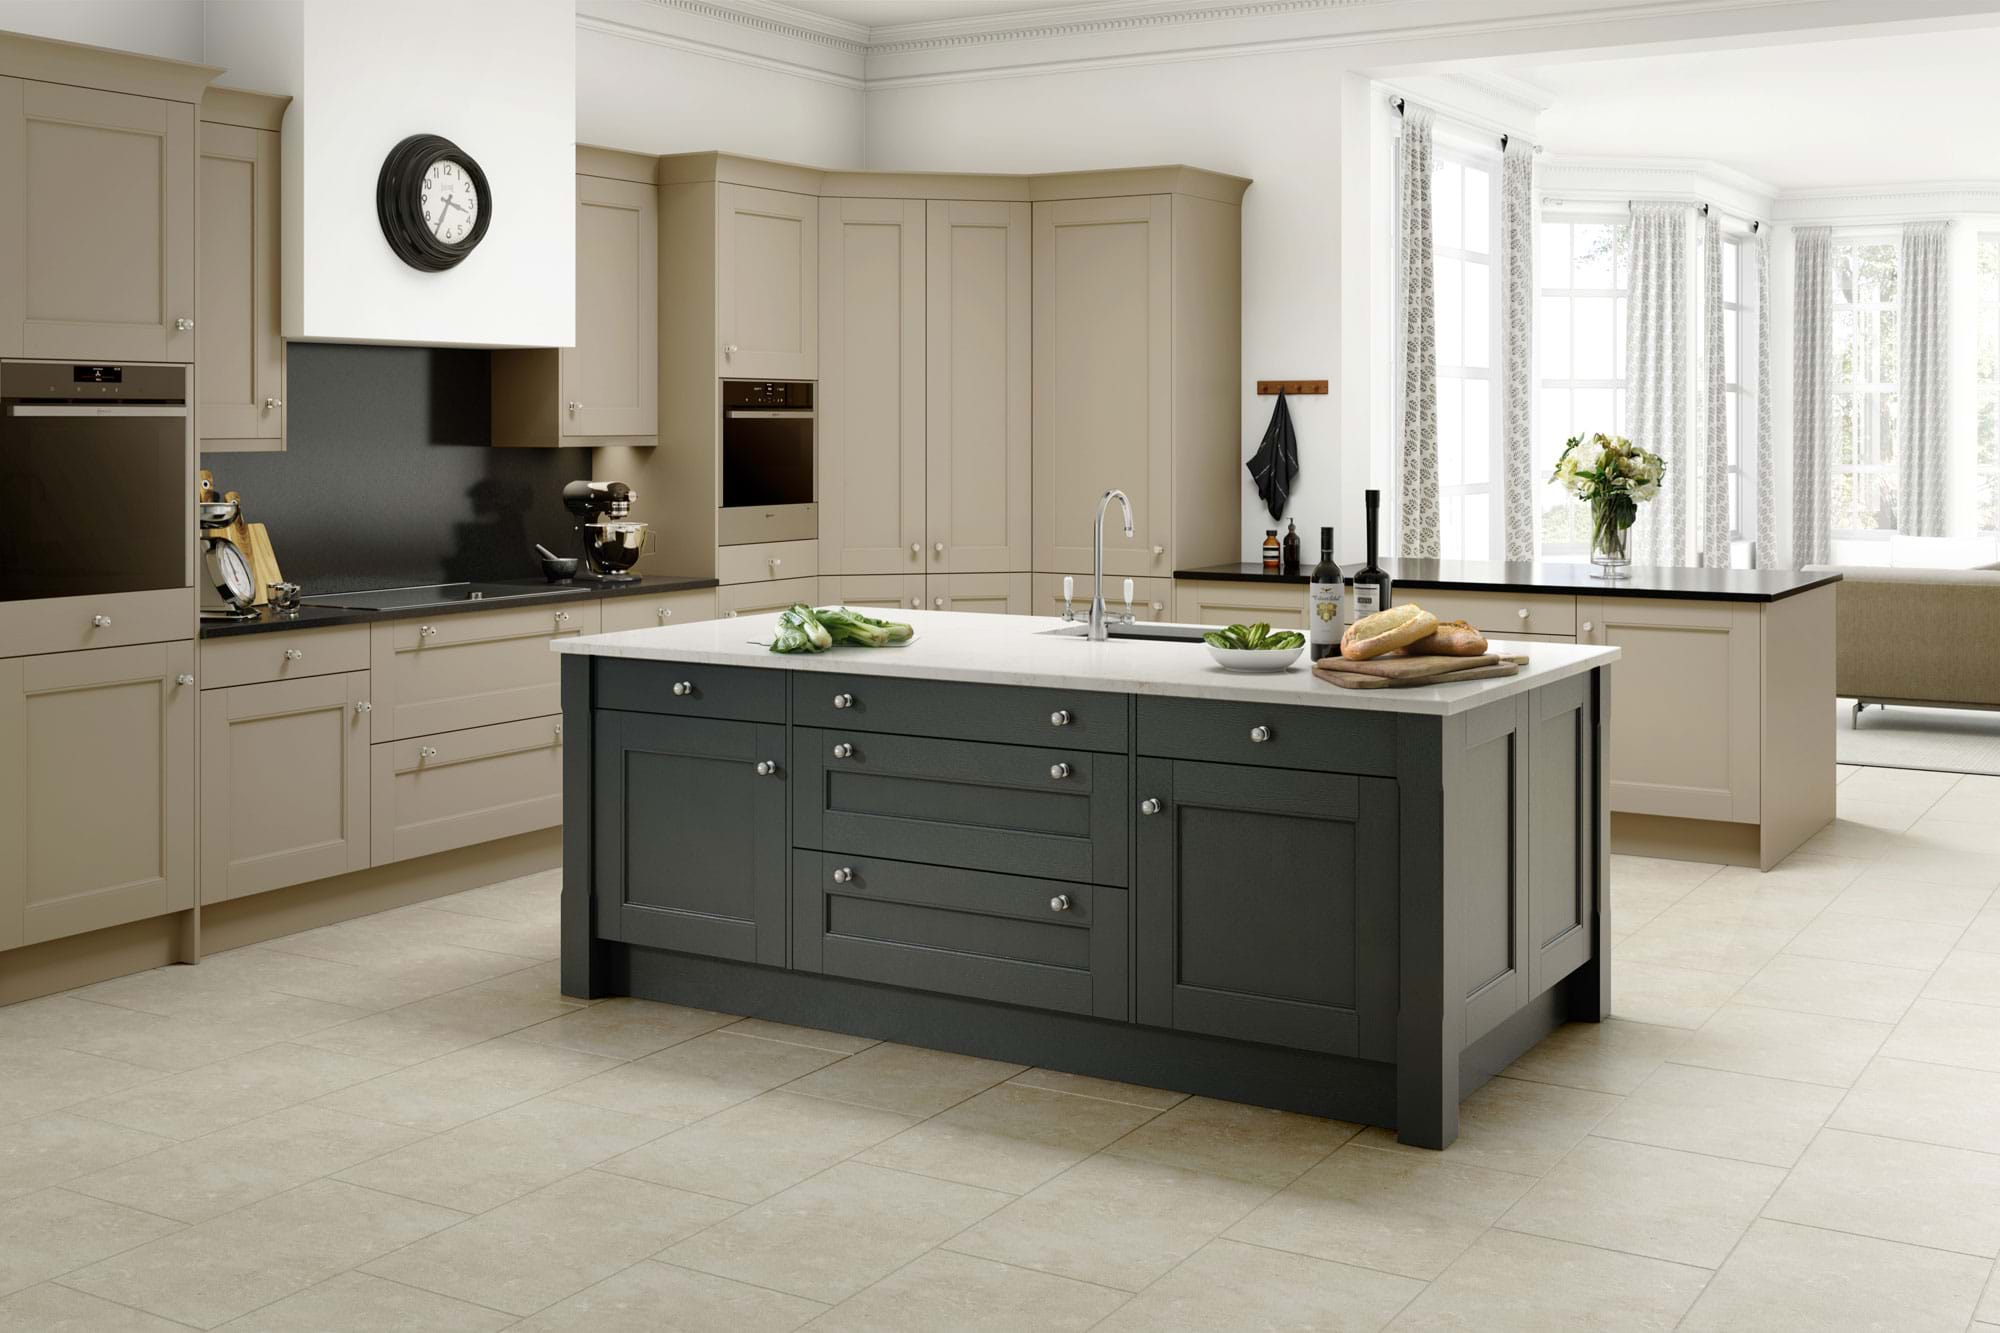 Two tone shaker kitchen in grey and white colour scheme with island